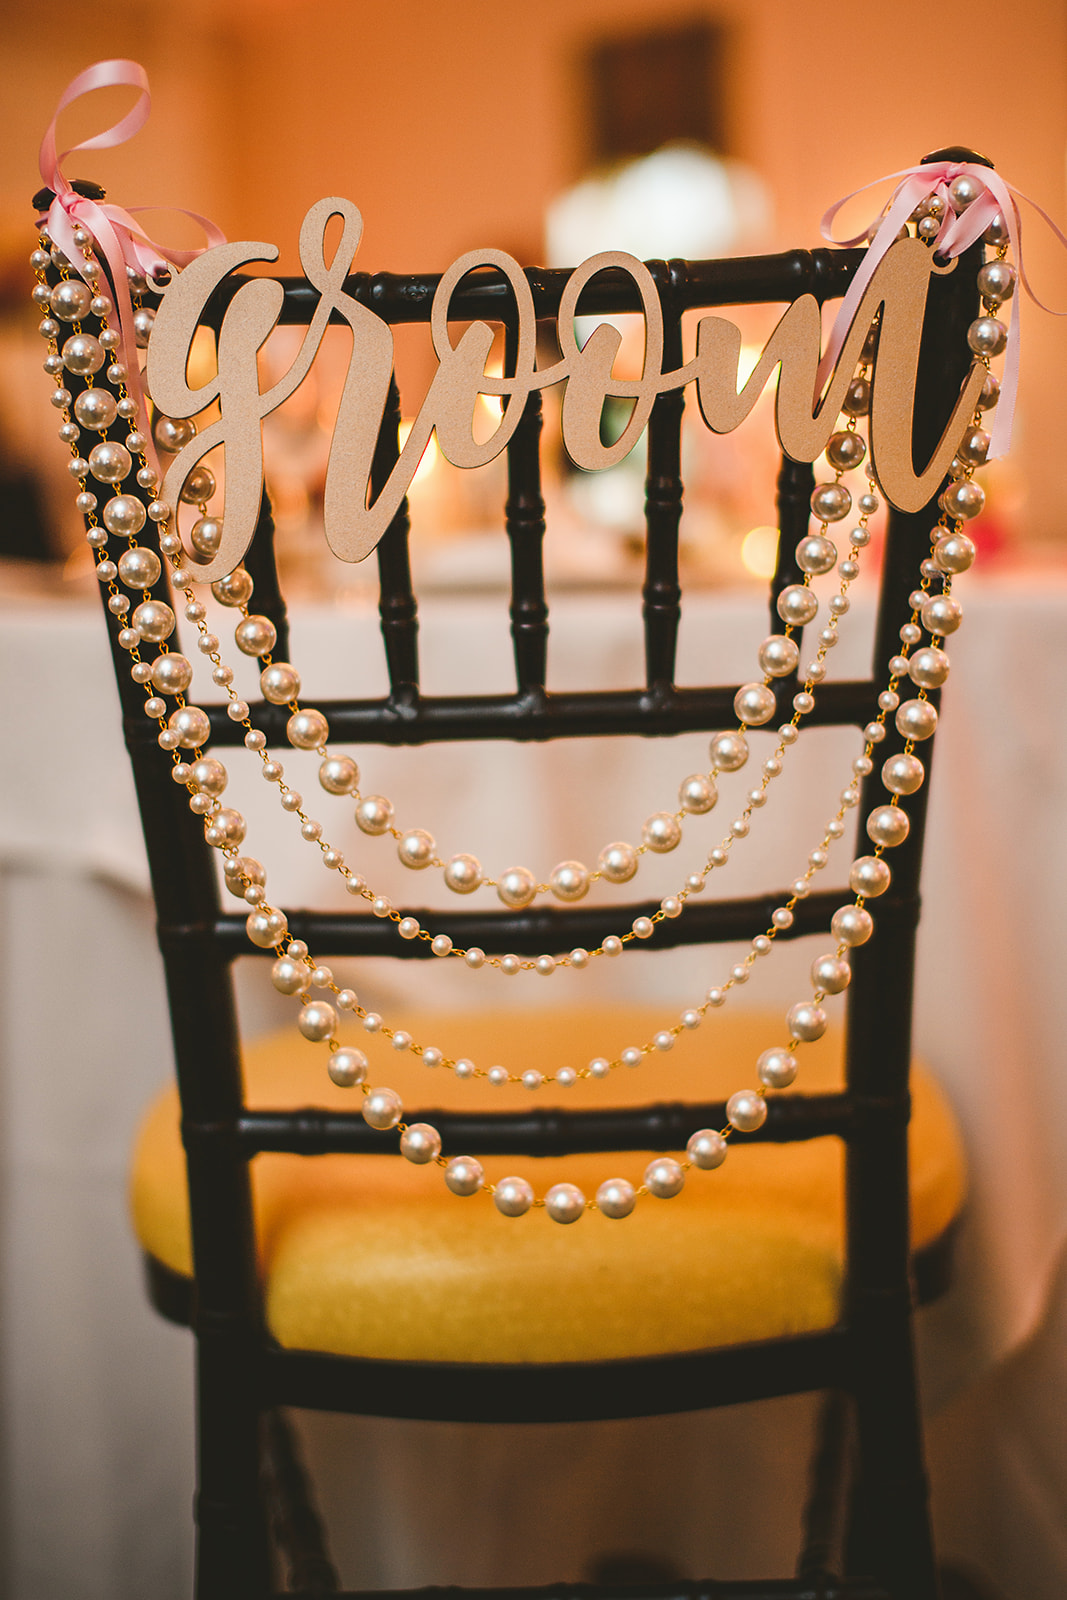 Atelier Ashley Flowers + Sam Hurd Photography + Washington Golf and Country Club + Diamond and Pearl Wedding + chair decor + bride and groom chair